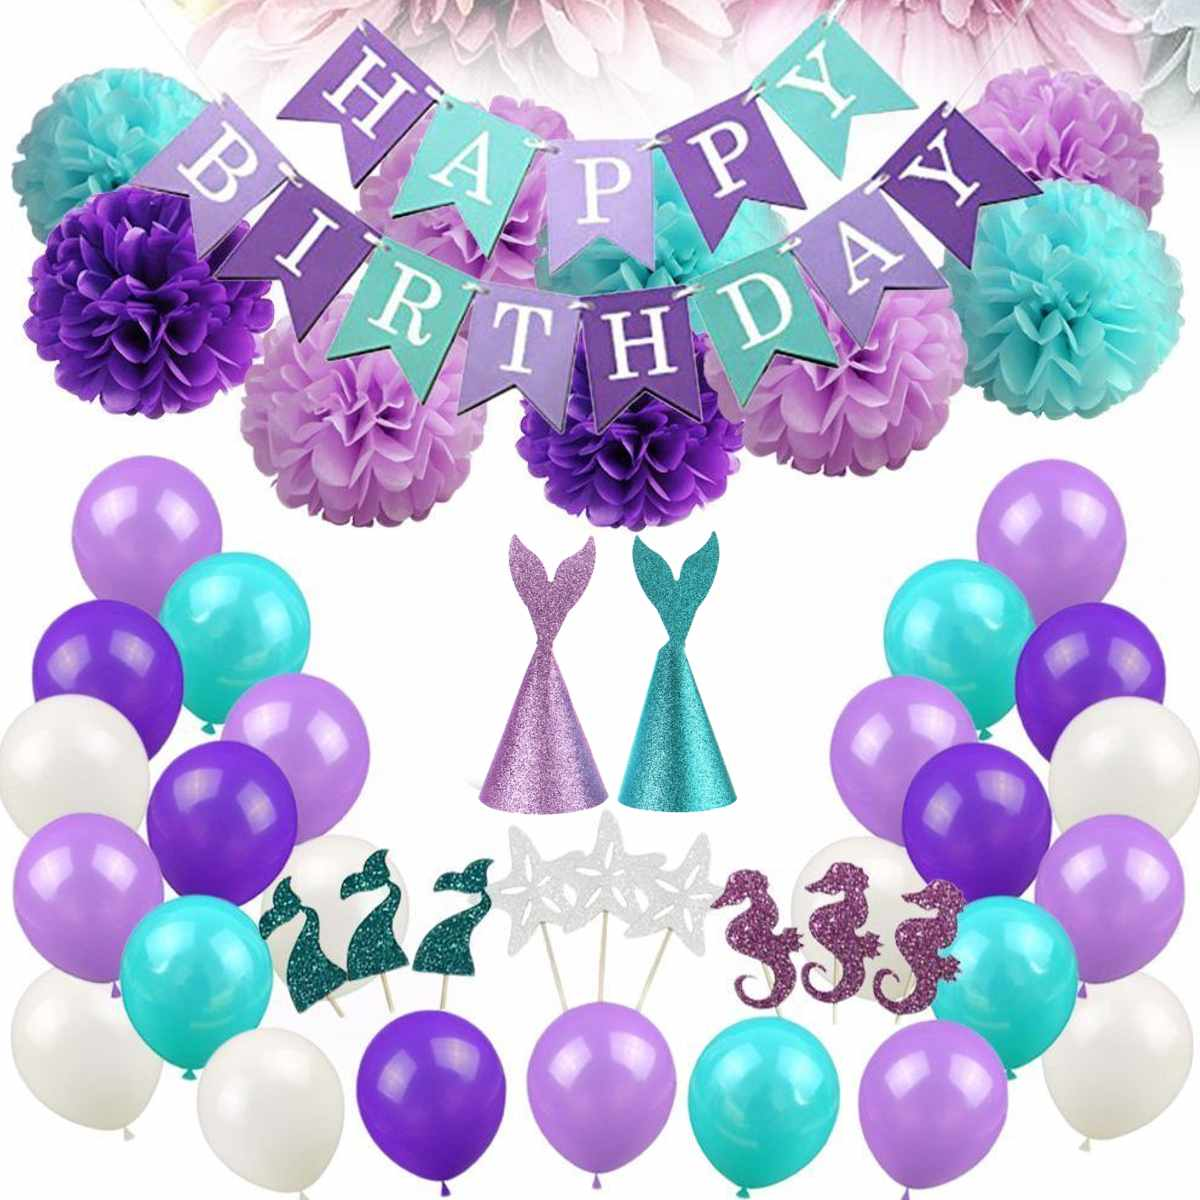 76Pcs Mermaid Theme Birthday Party Set For Adult Kids Ocean Party Prom Supplies Balloons Headdress Cake Topper Banner Room Decor76Pcs Mermaid Theme Birthday Party Set For Adult Kids Ocean Party Prom Supplies Balloons Headdress Cake Topper Banner Room Decor